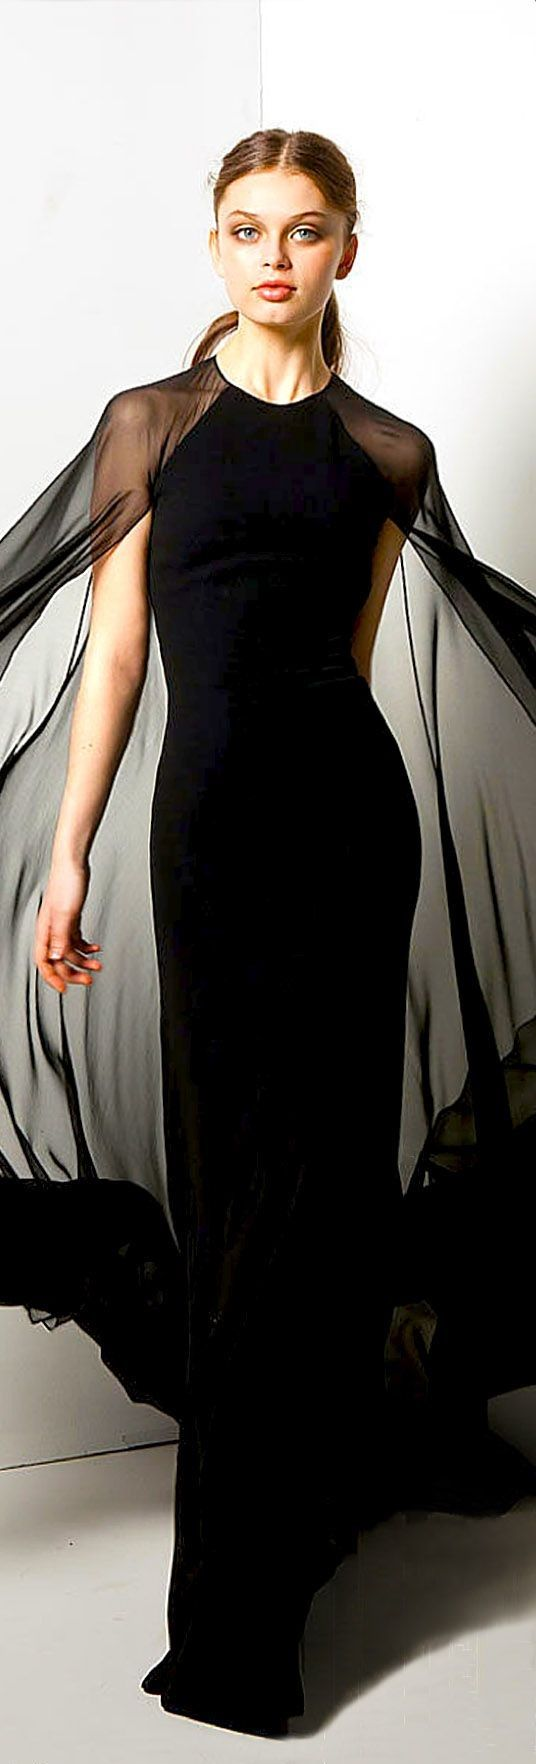 best a closet of possibilities images on pinterest dress